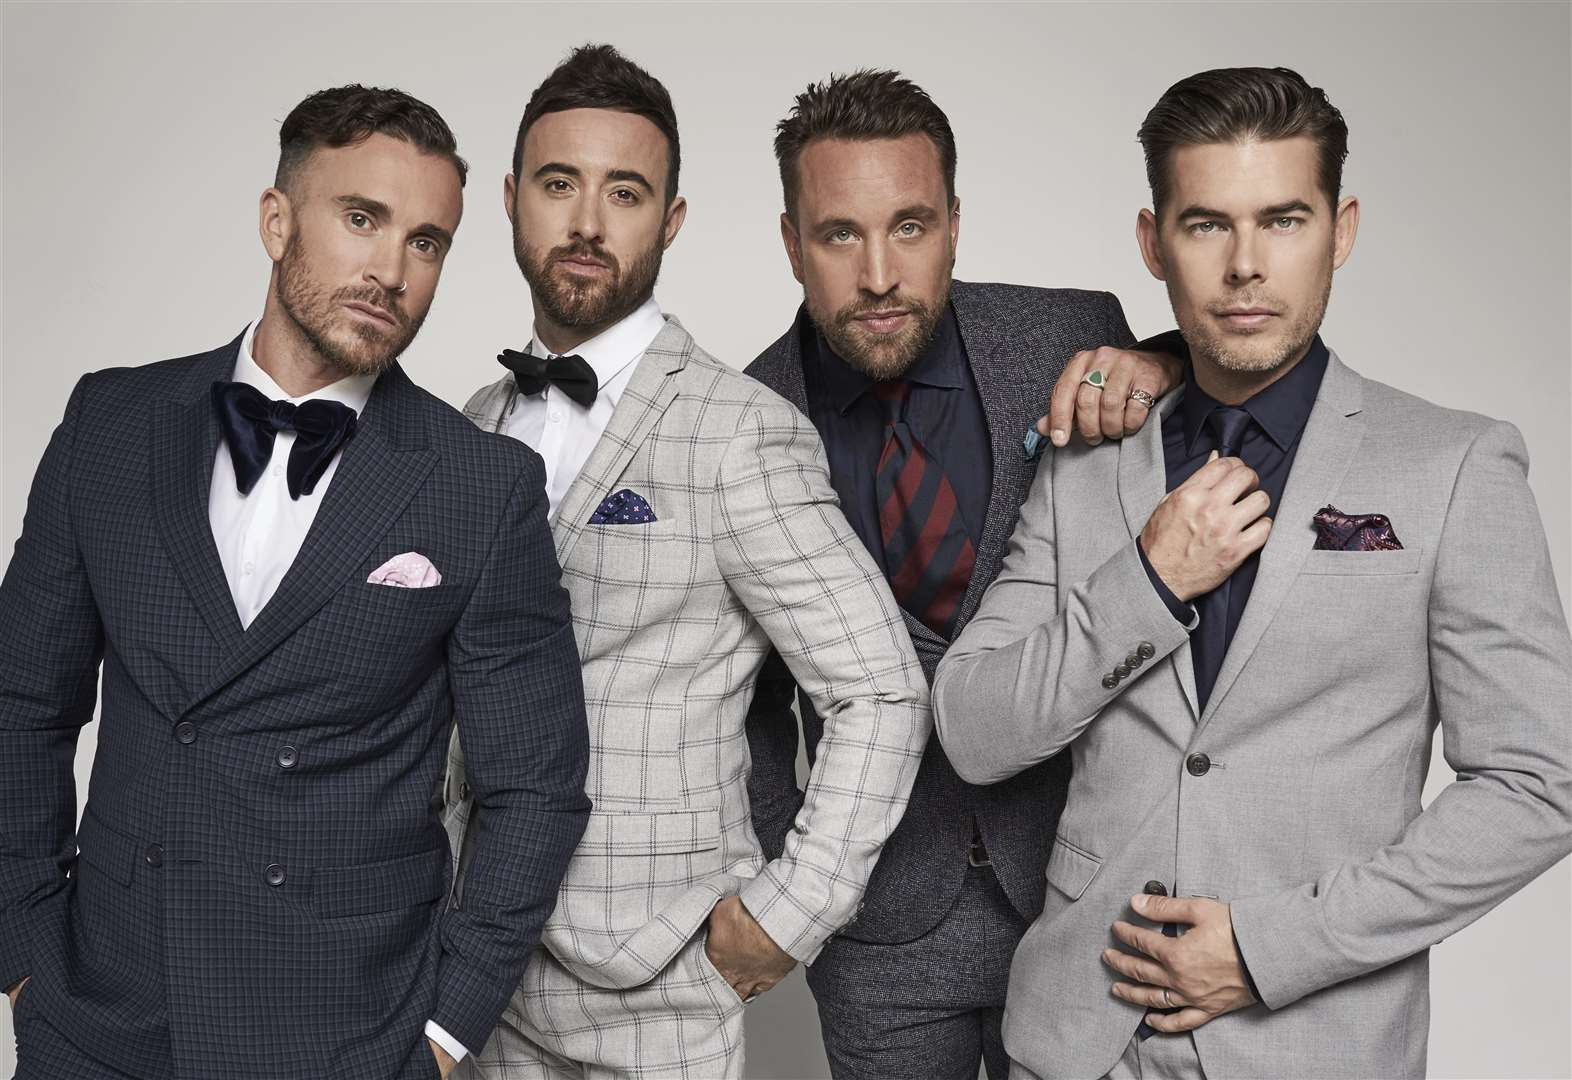 The Overtones bounce back as a four piece